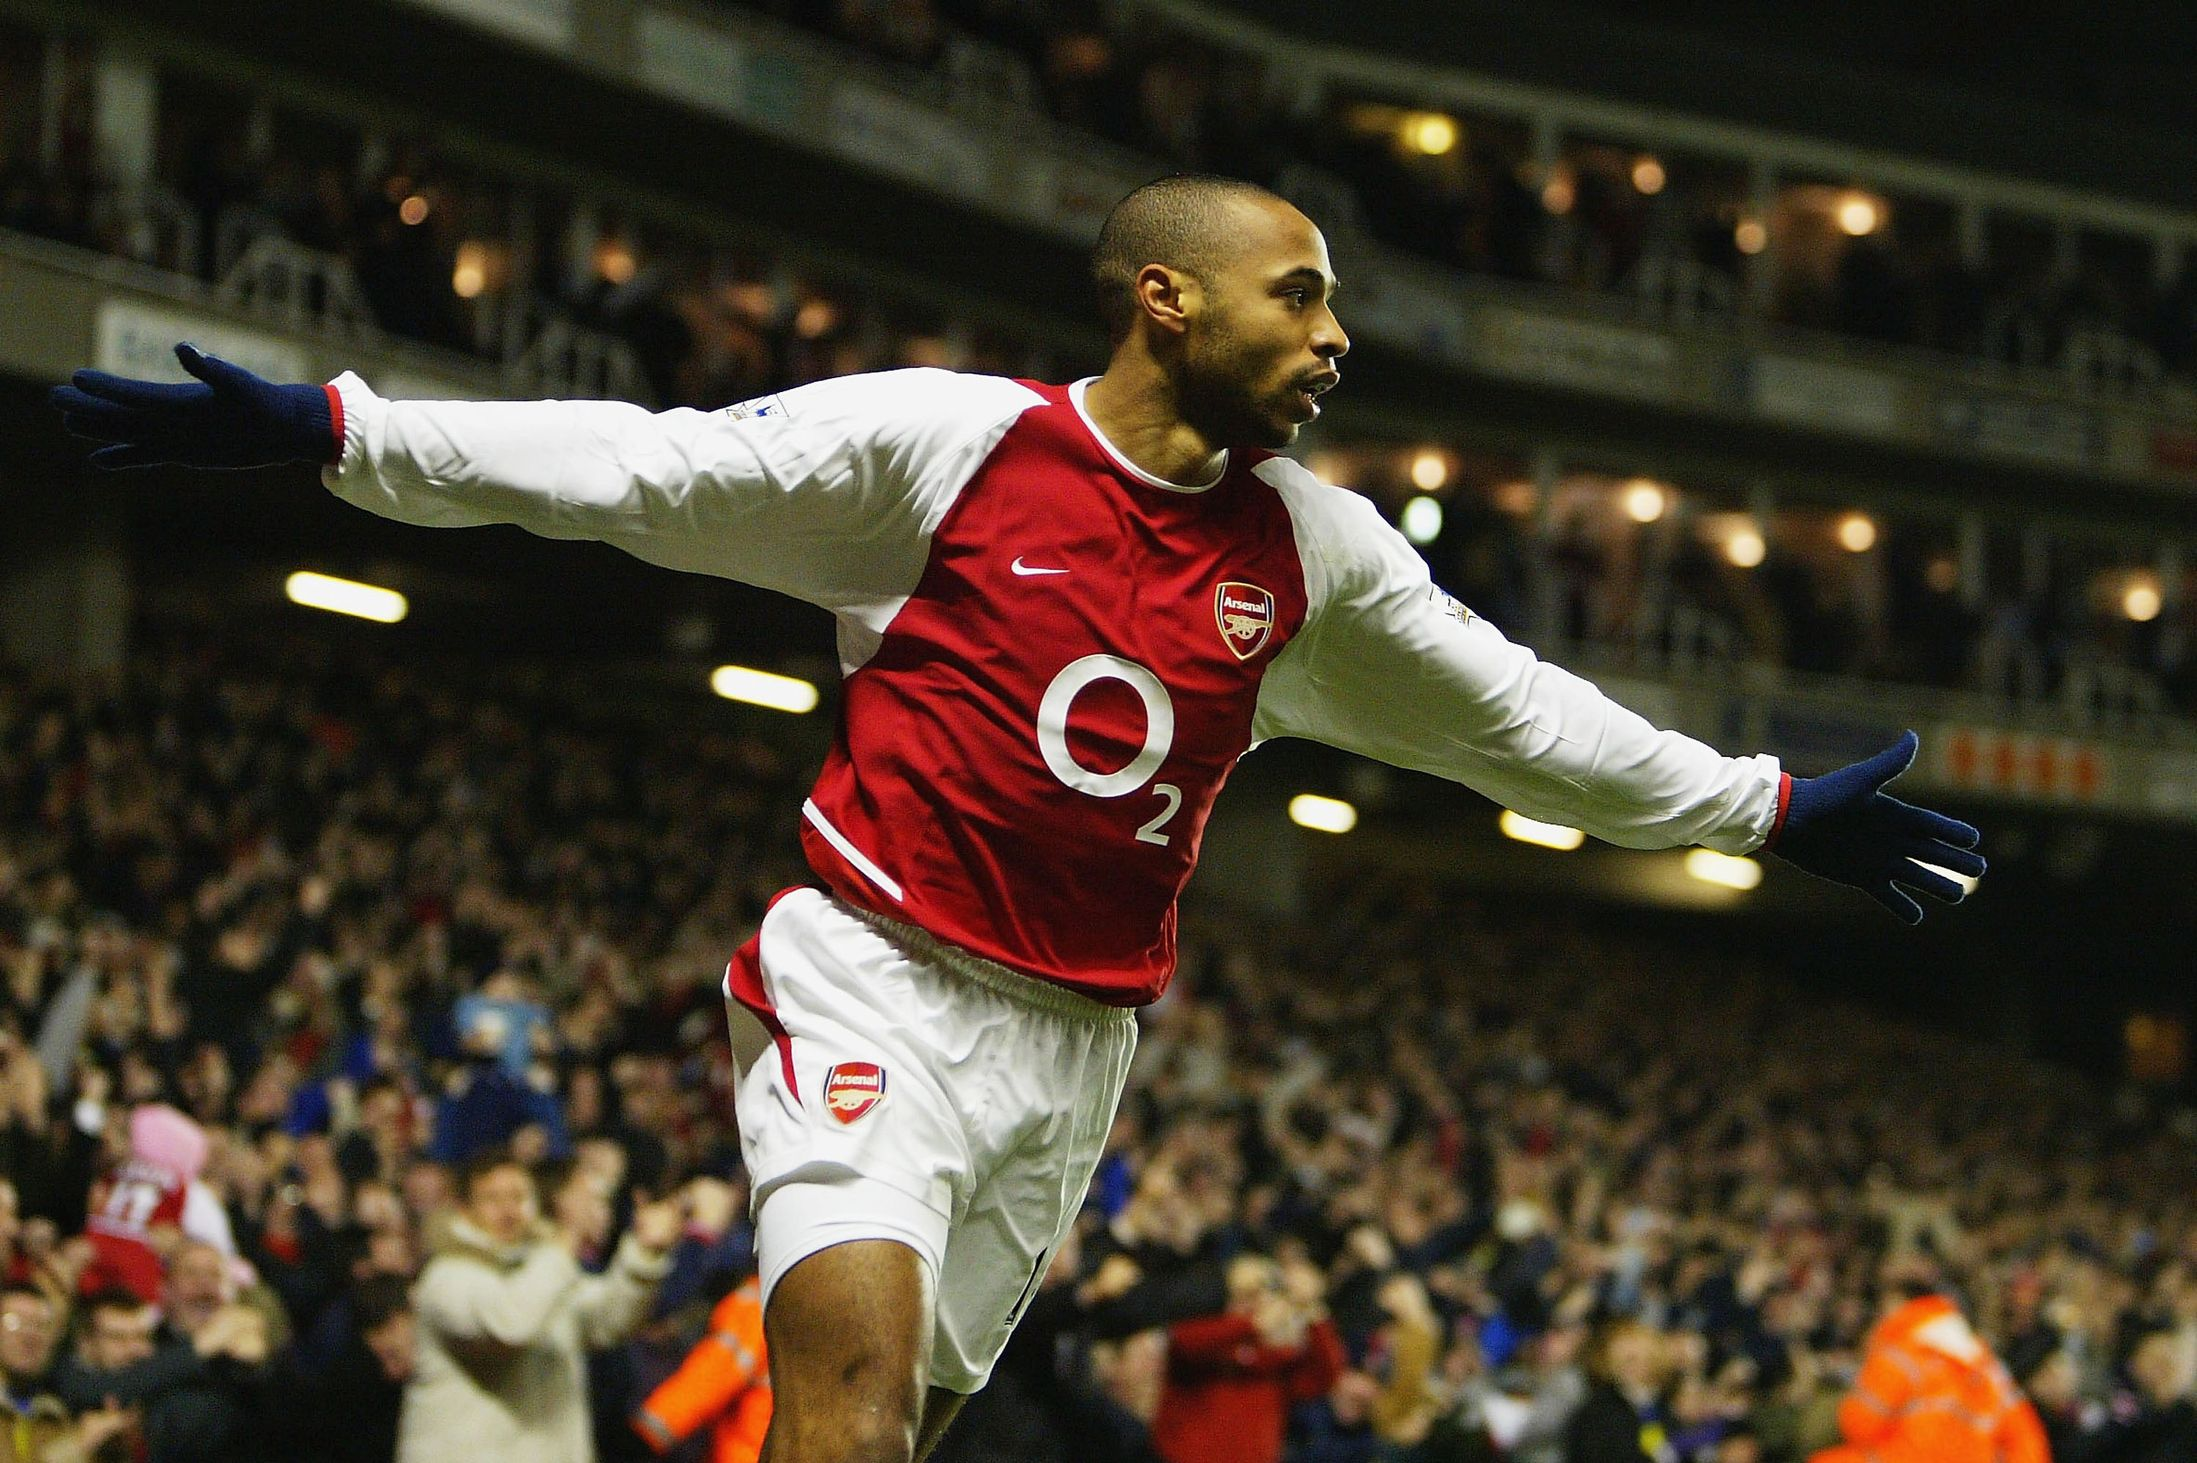 Thierry-Henry-Scores-Goal-Premier-League-season-20032004